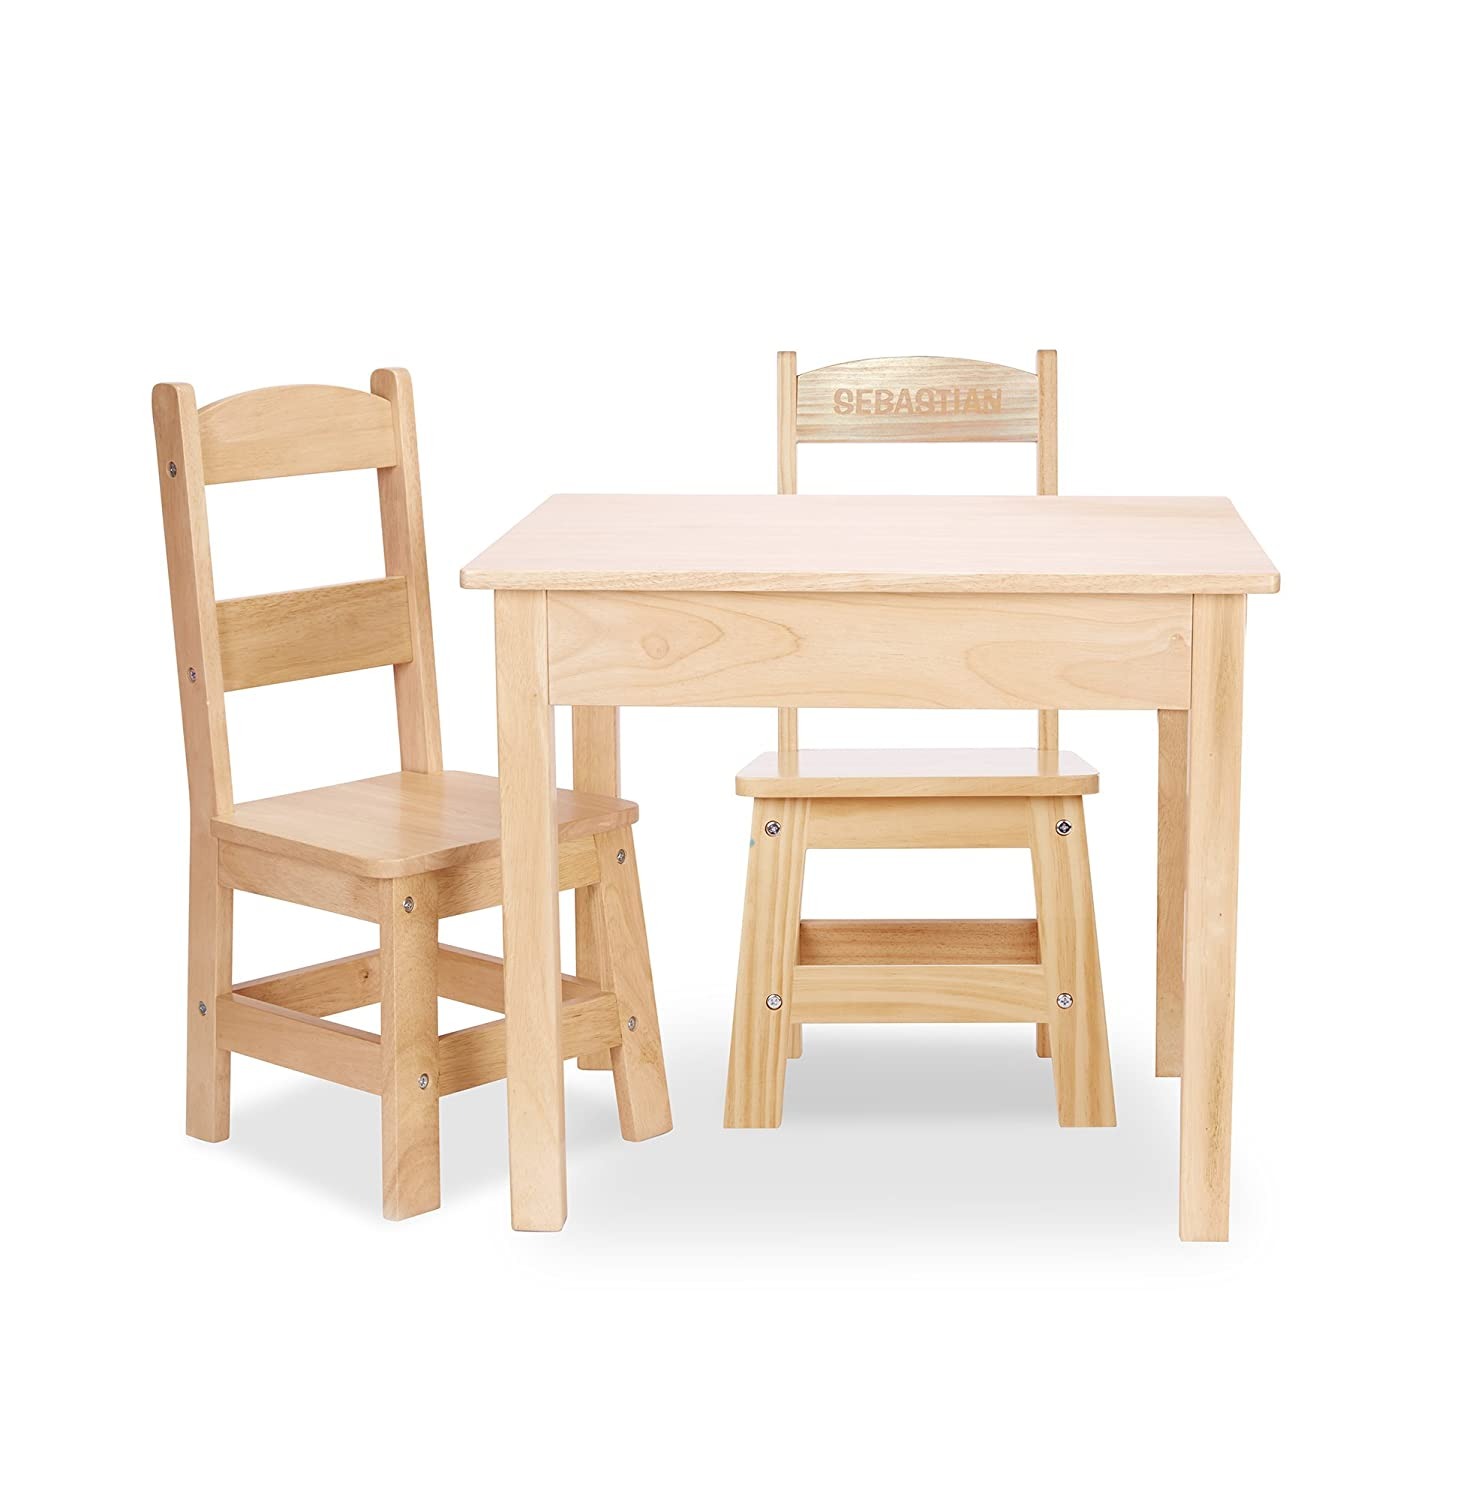 Melissa & Doug Solid Wood Table and 2 Chairs Set - Light Finish Furniture for Playroom 2427